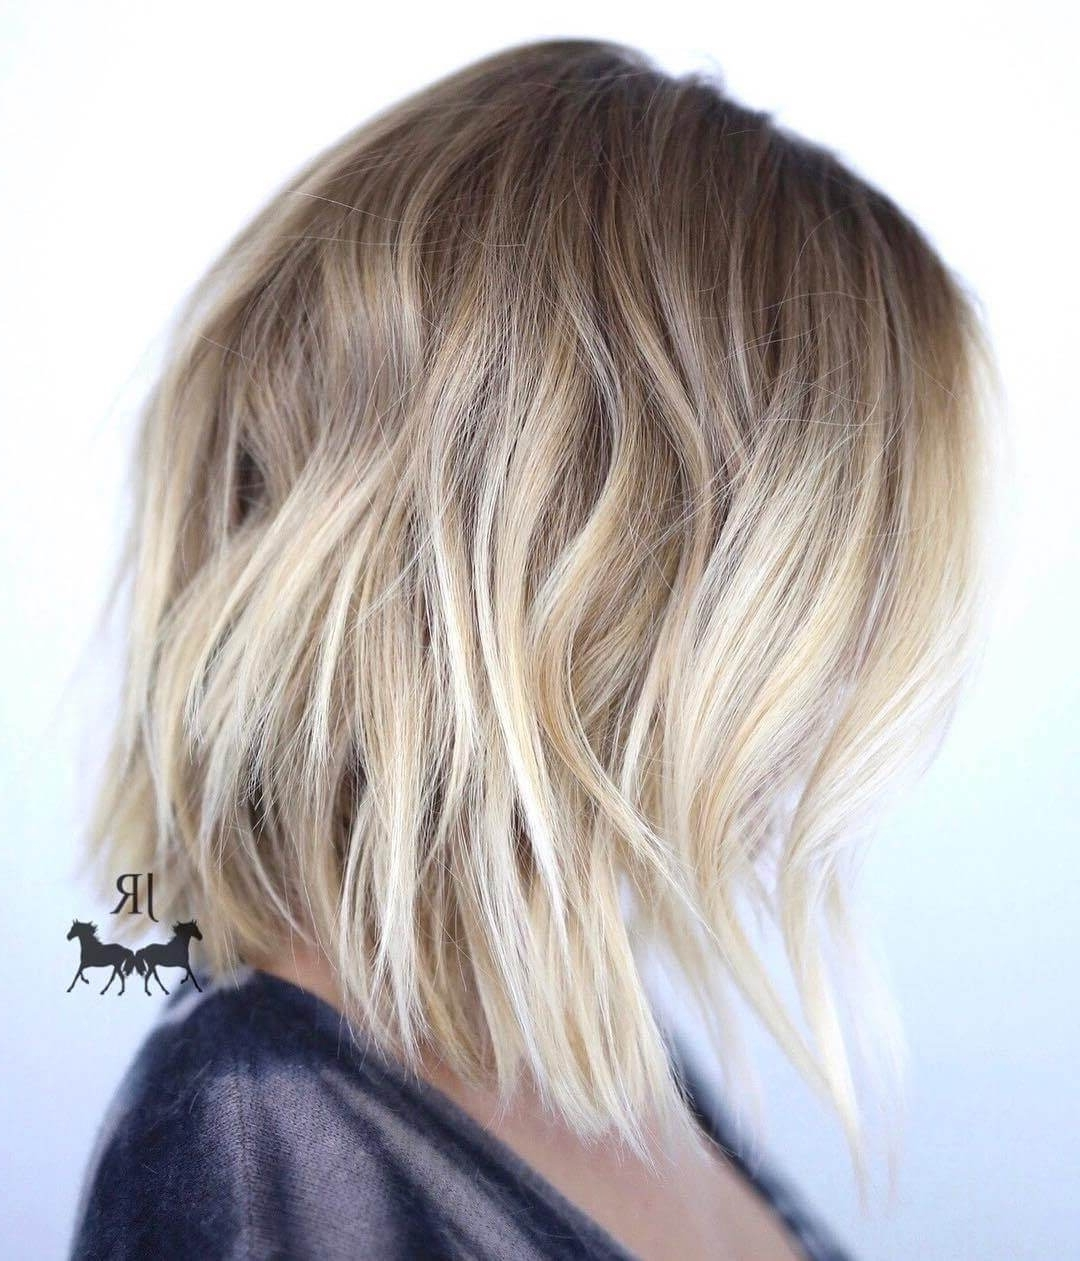 50 Fresh Short Blonde Hair Ideas To Update Your Style In 2018 Inside Most Recently Released Long Bob Blonde Hairstyles With Babylights (View 9 of 20)